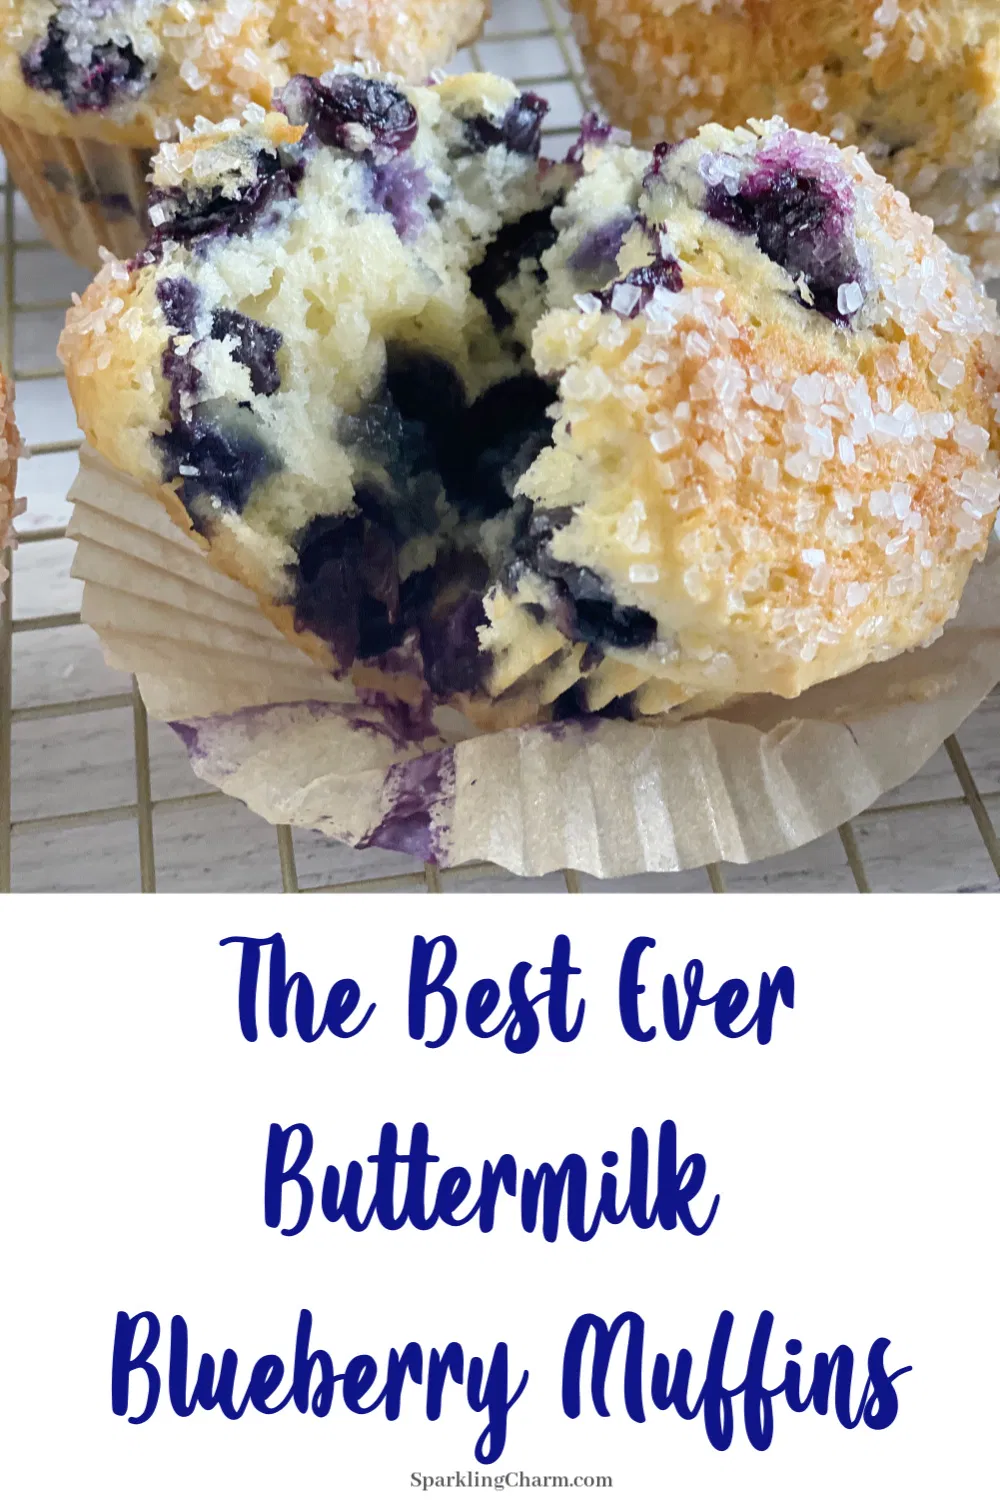 The Best Ever Homemade Buttermilk Blueberry Muffins Sparkling Charm Entertaining Lifestyle Tips Recipes Crafts Recipe In 2020 Homemade Buttermilk Buttermilk Blueberry Muffins Blue Berry Muffins